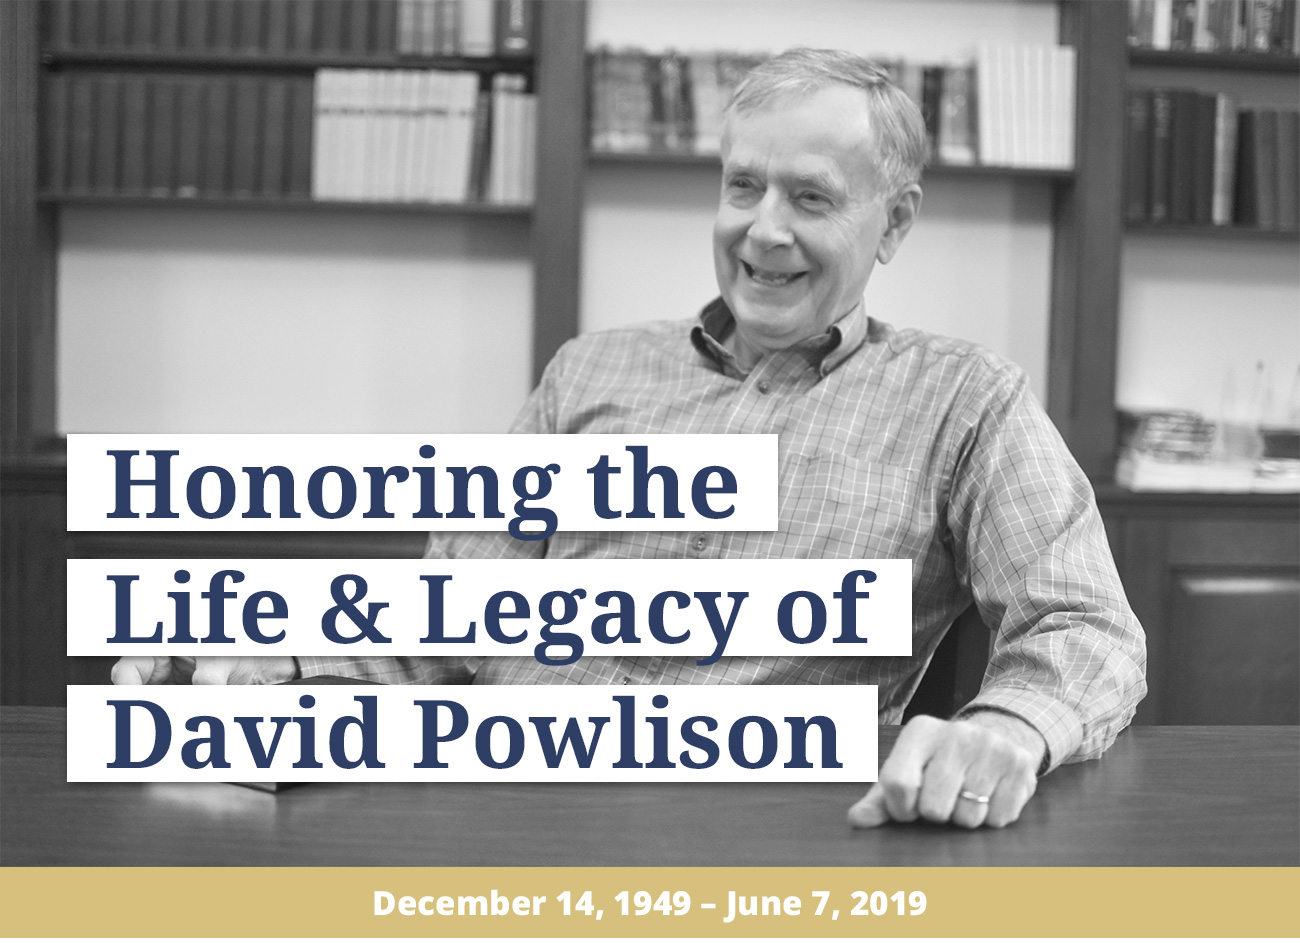 David Powlison's Final Book